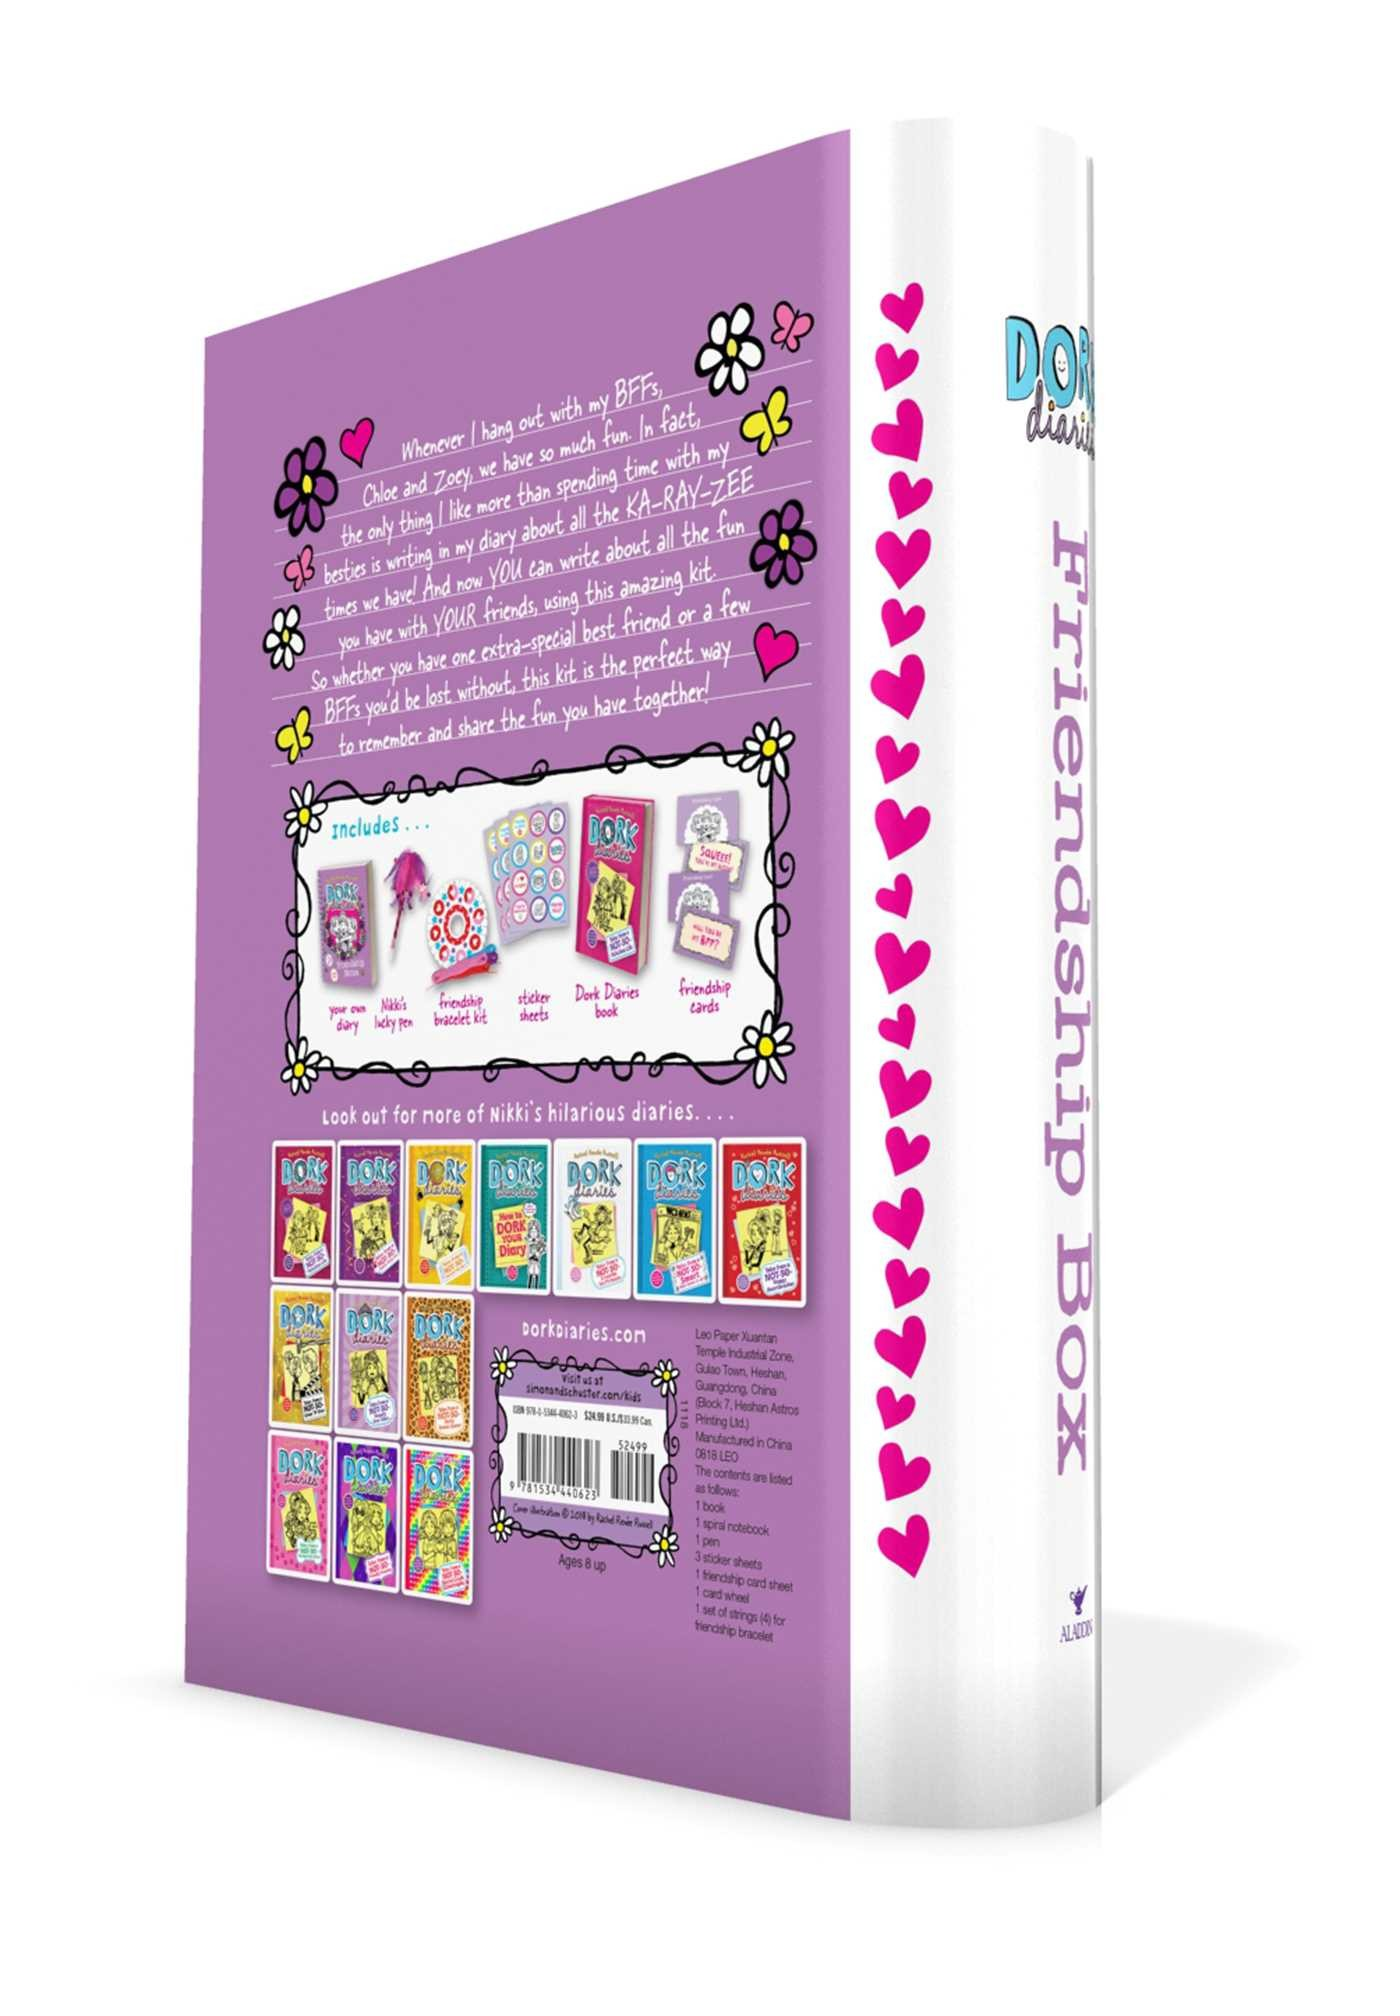 Dork diaries friendship box 9781534440623.in02